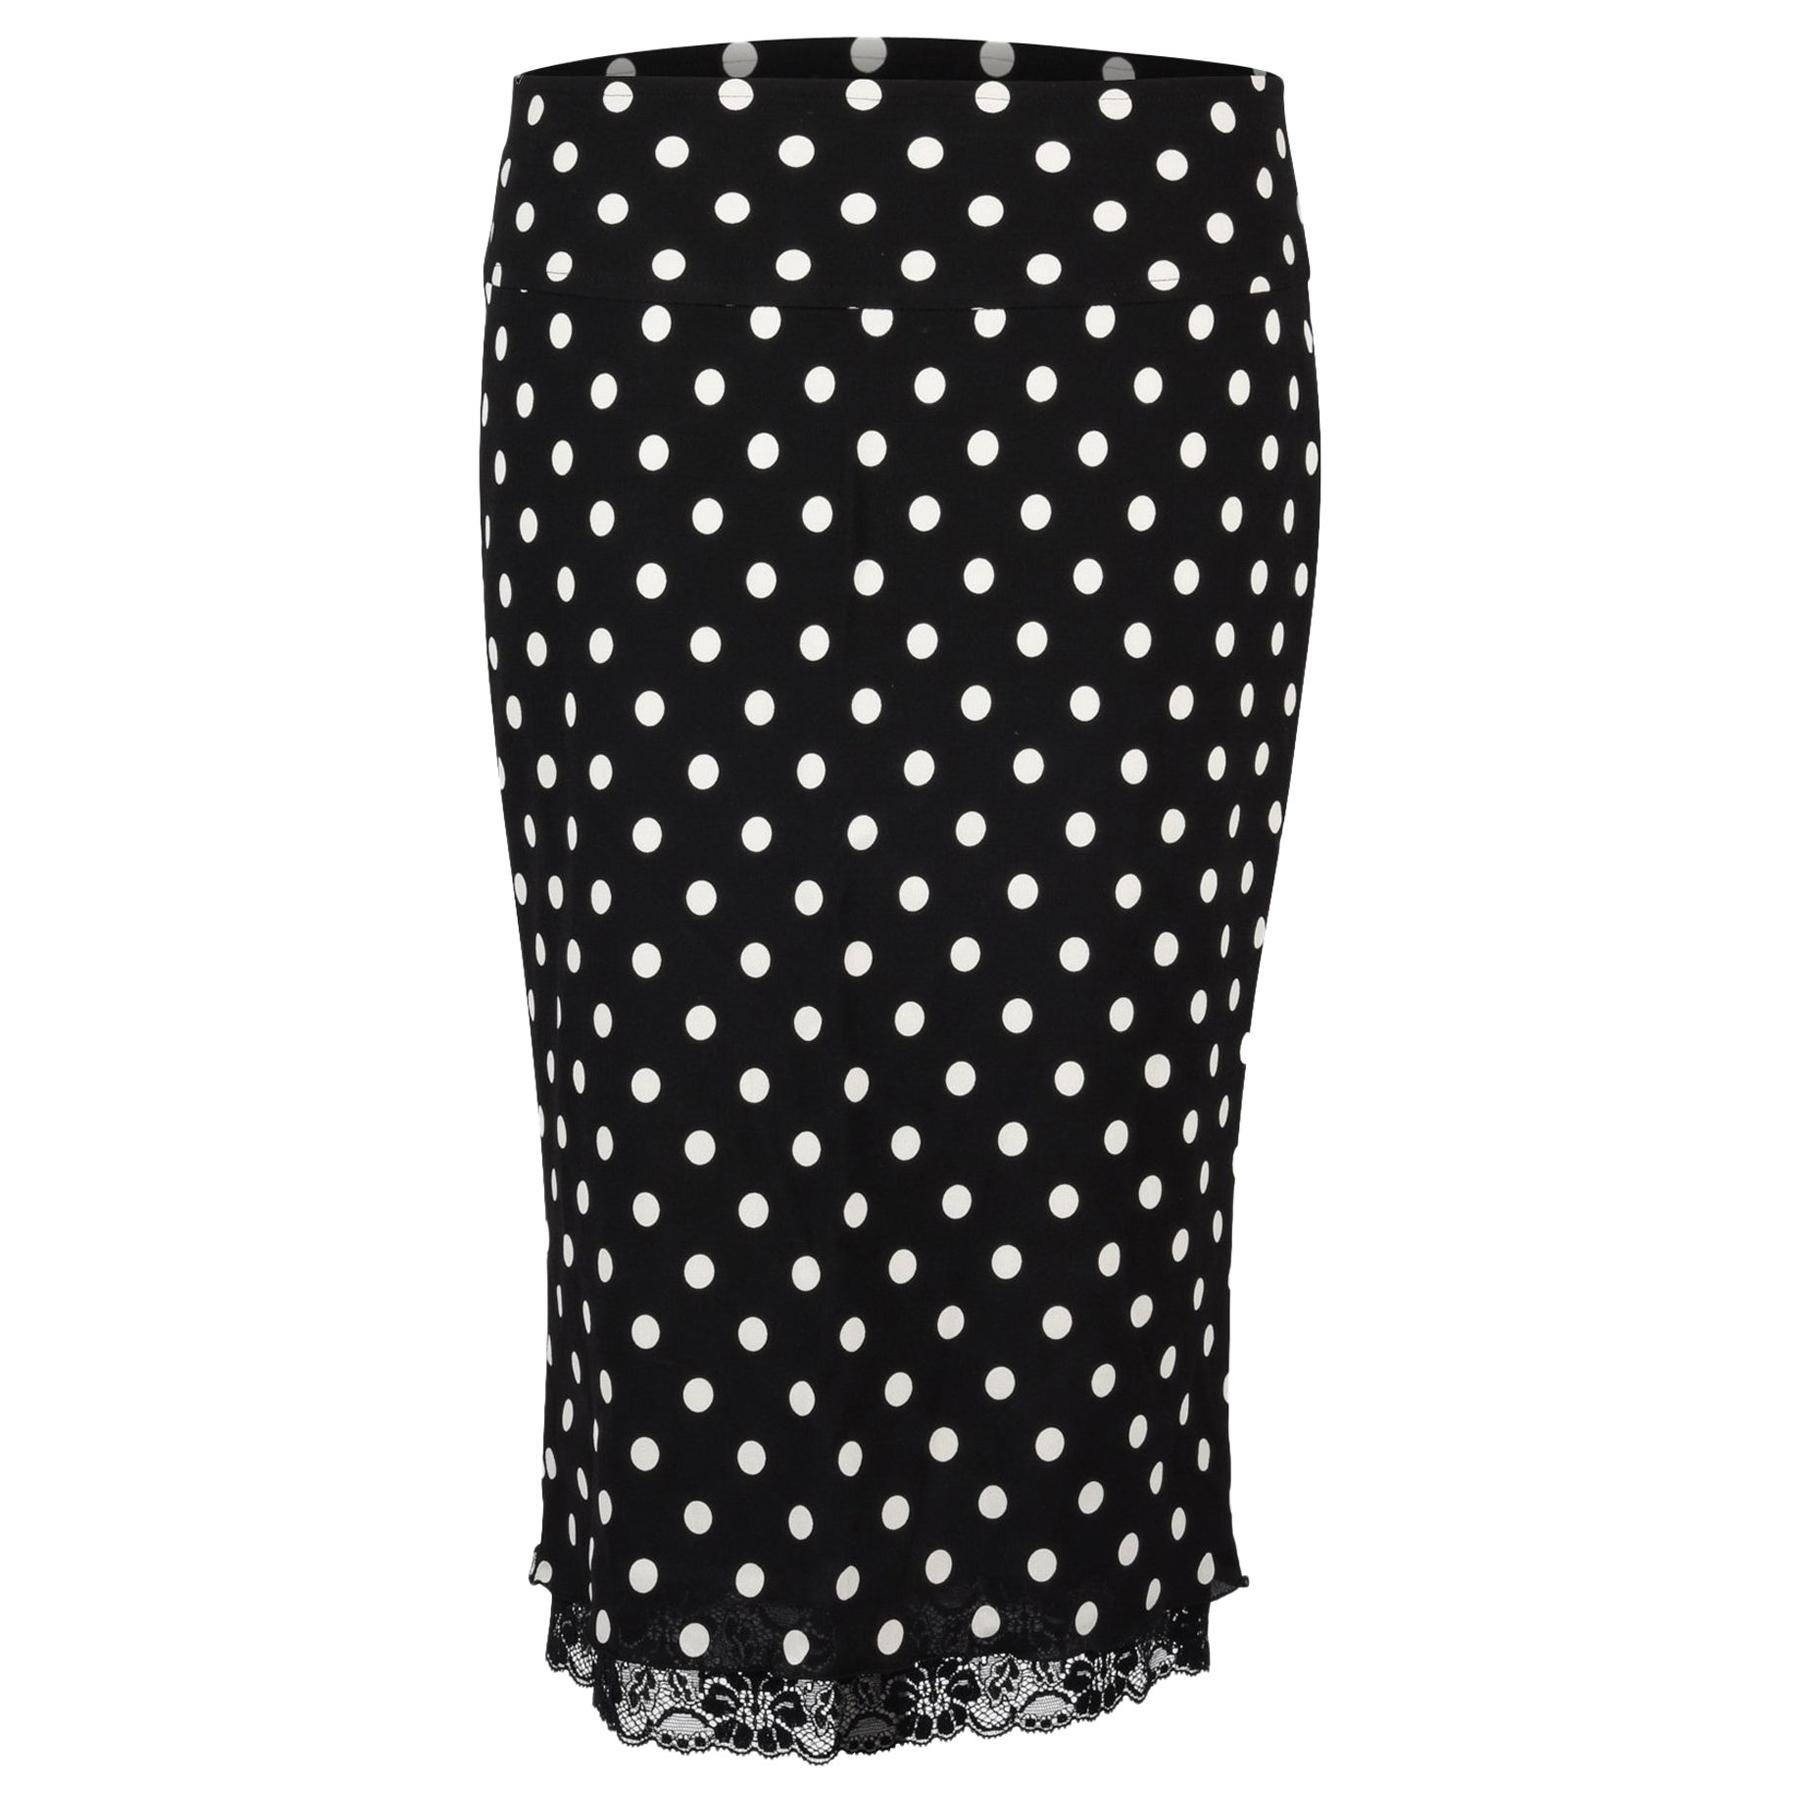 Dolce&Gabbana Skirt Polka Dot Lace Trim Stretch Pencil 38 / 4